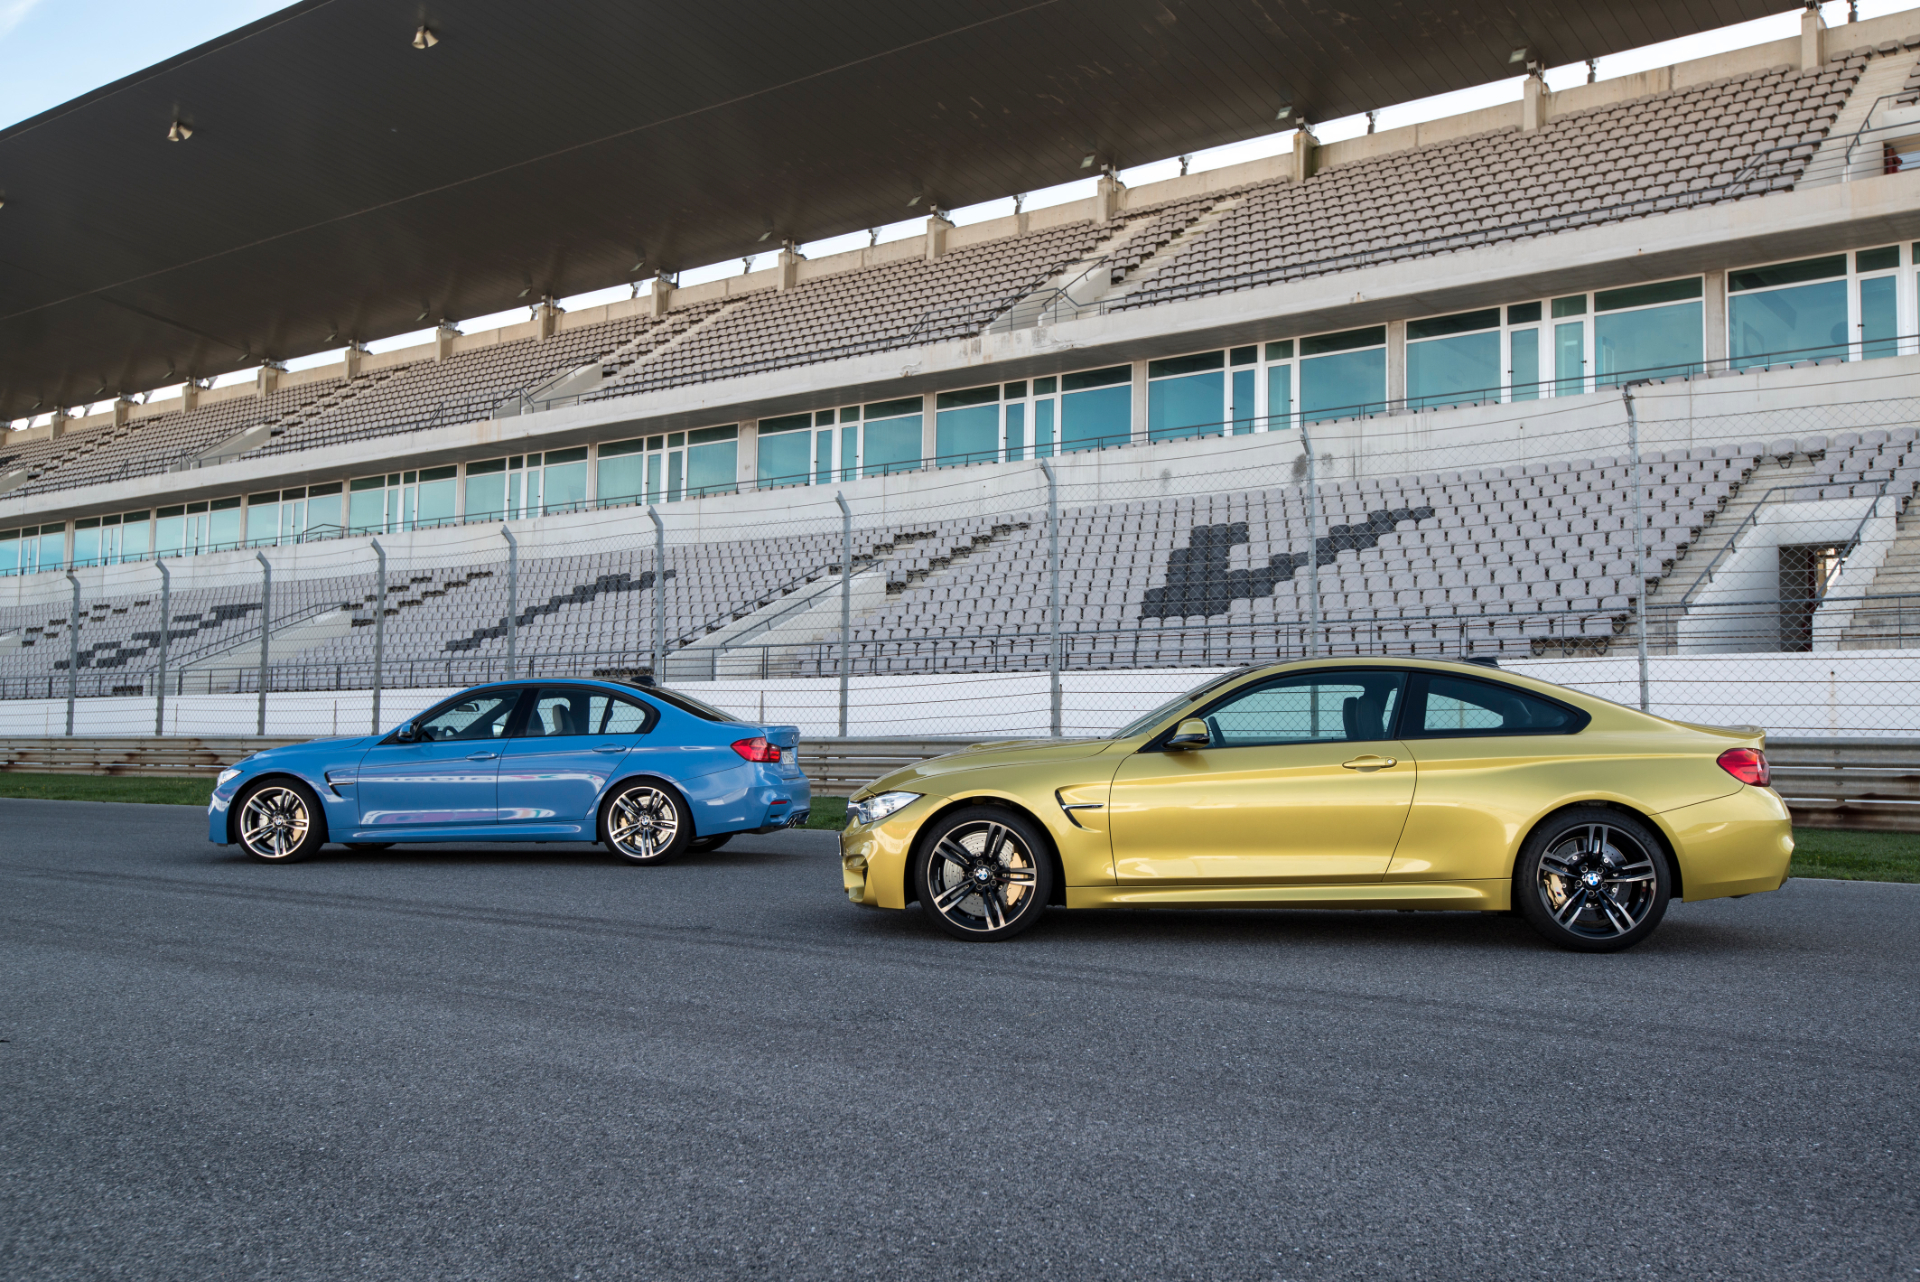 no gas guzzler tax for the 2015 bmw m3 and m4 says epa - autoevolution